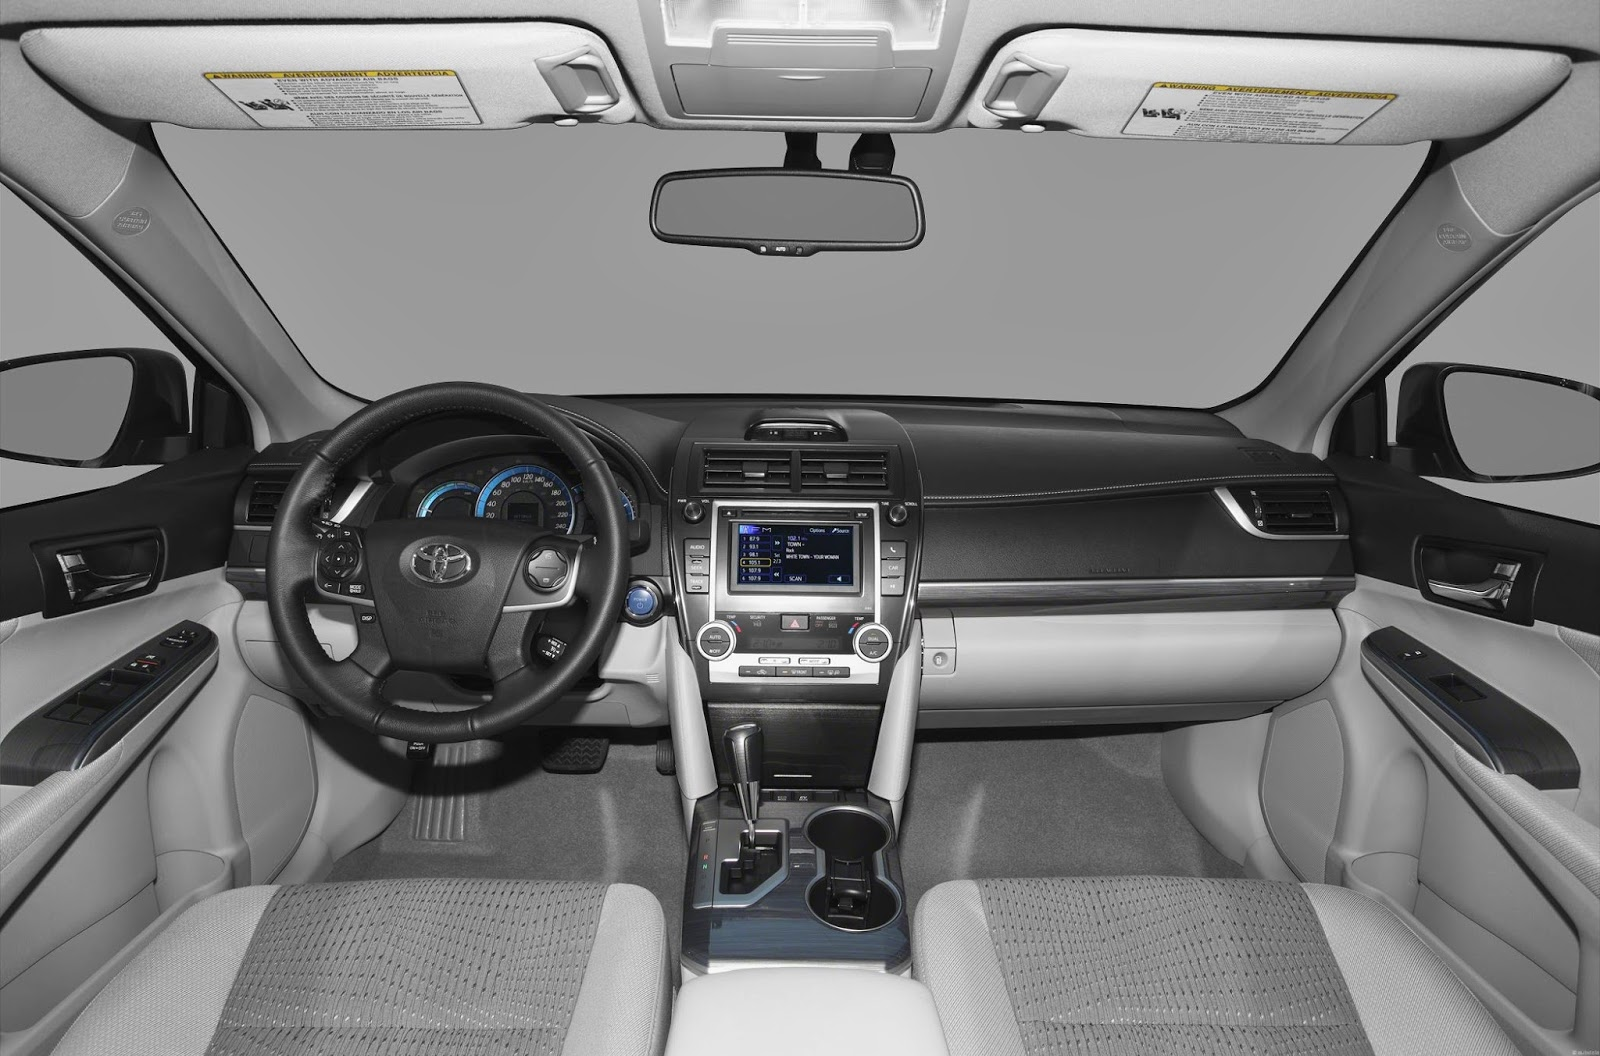 Exceptional Toyota Camry 2014 Interior